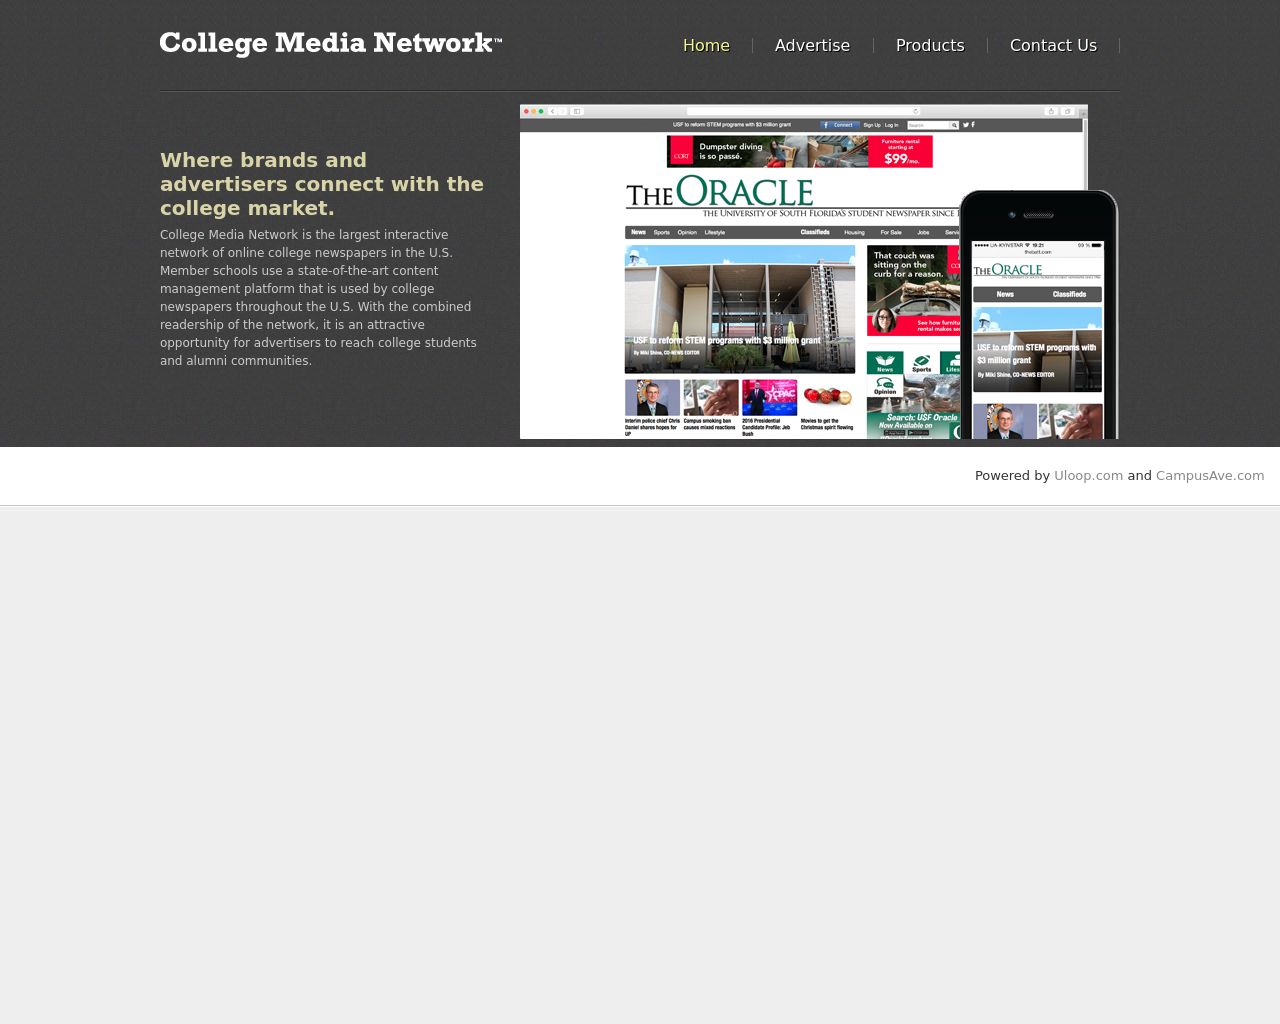 College-Media-Network-Advertising-Reviews-Pricing